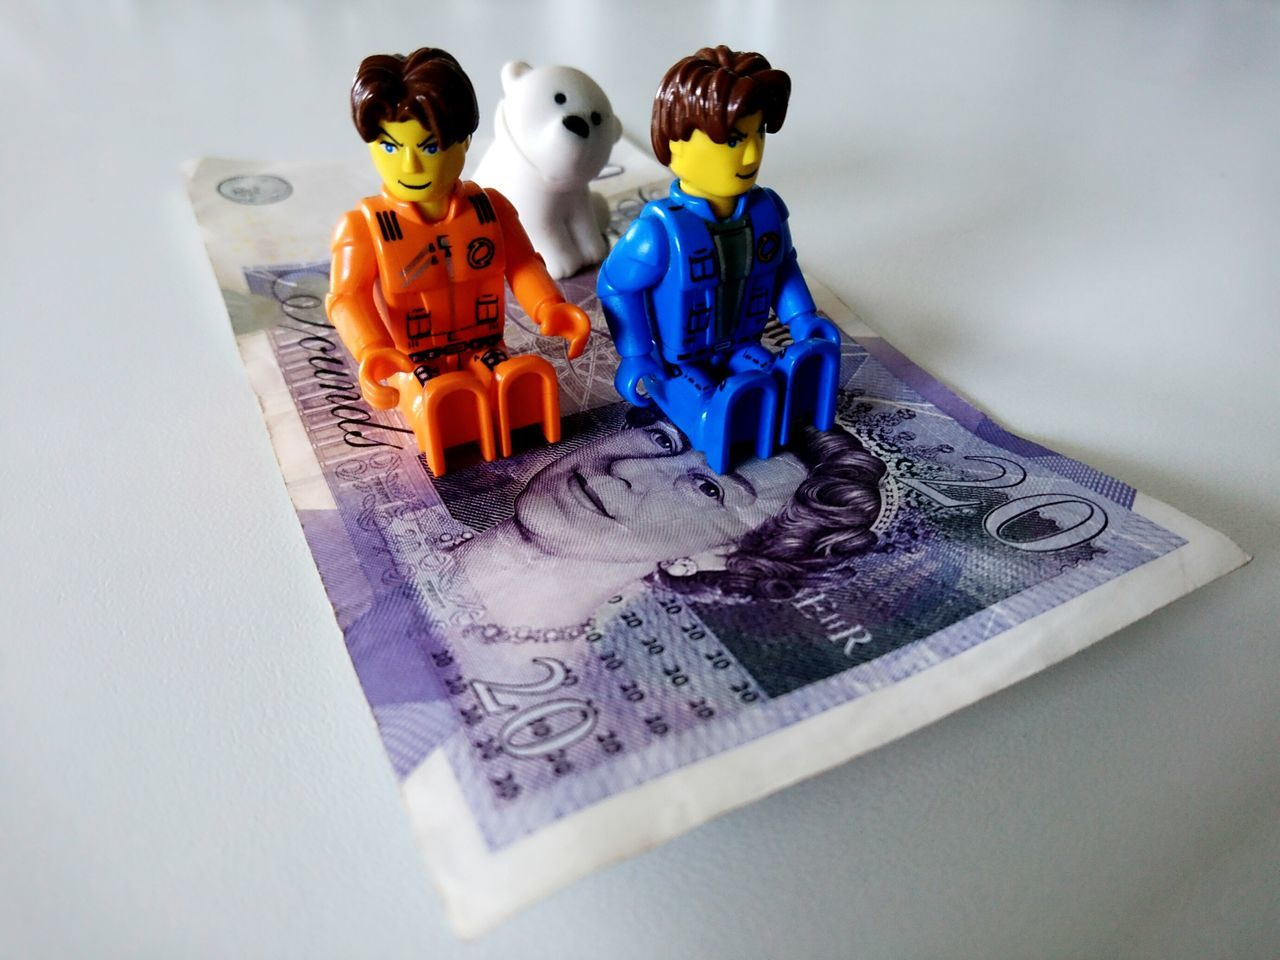 Creativity Togetherness Business Finance And Industry Indoors  LEGO Legophotography Flying Carpet Money 20 Pounds Sterling Toys Bear